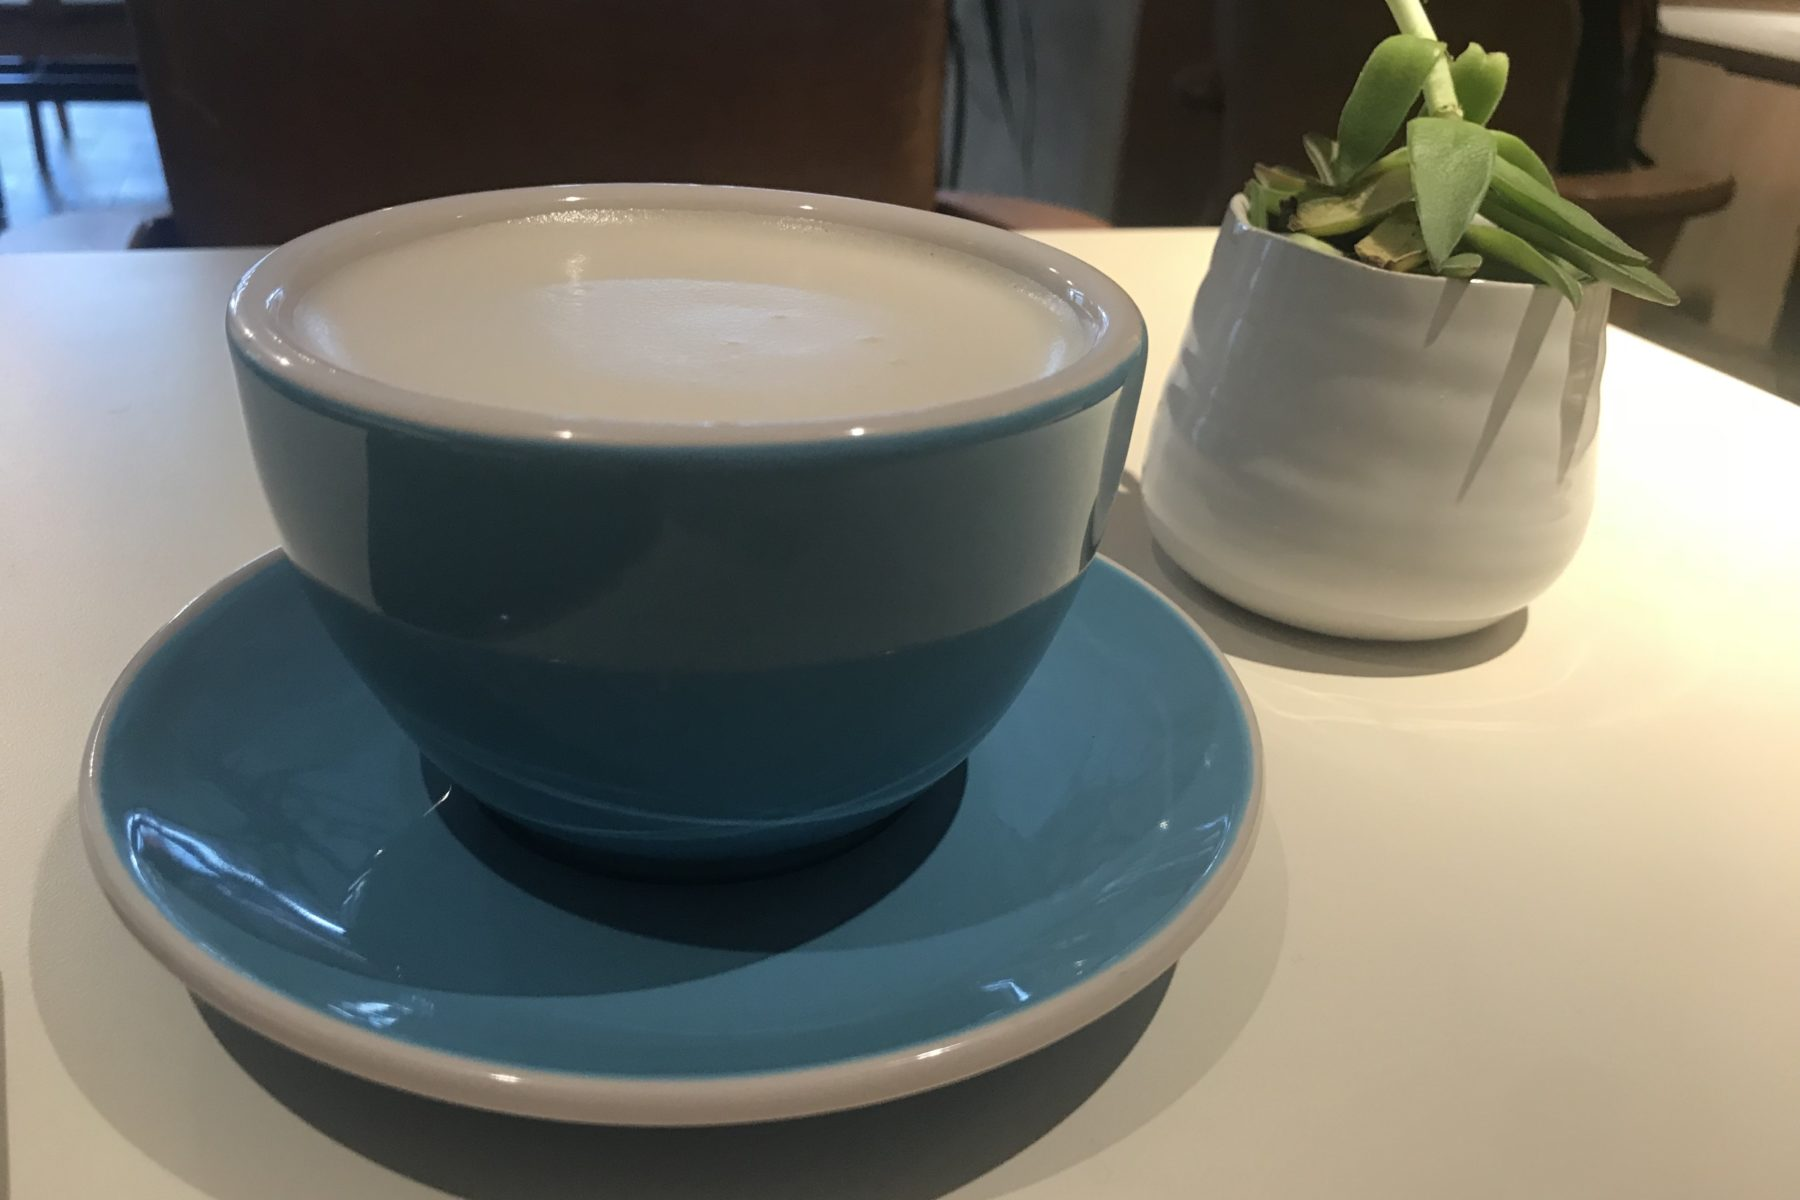 a coffee in a blue cup next to a succulent in a white container